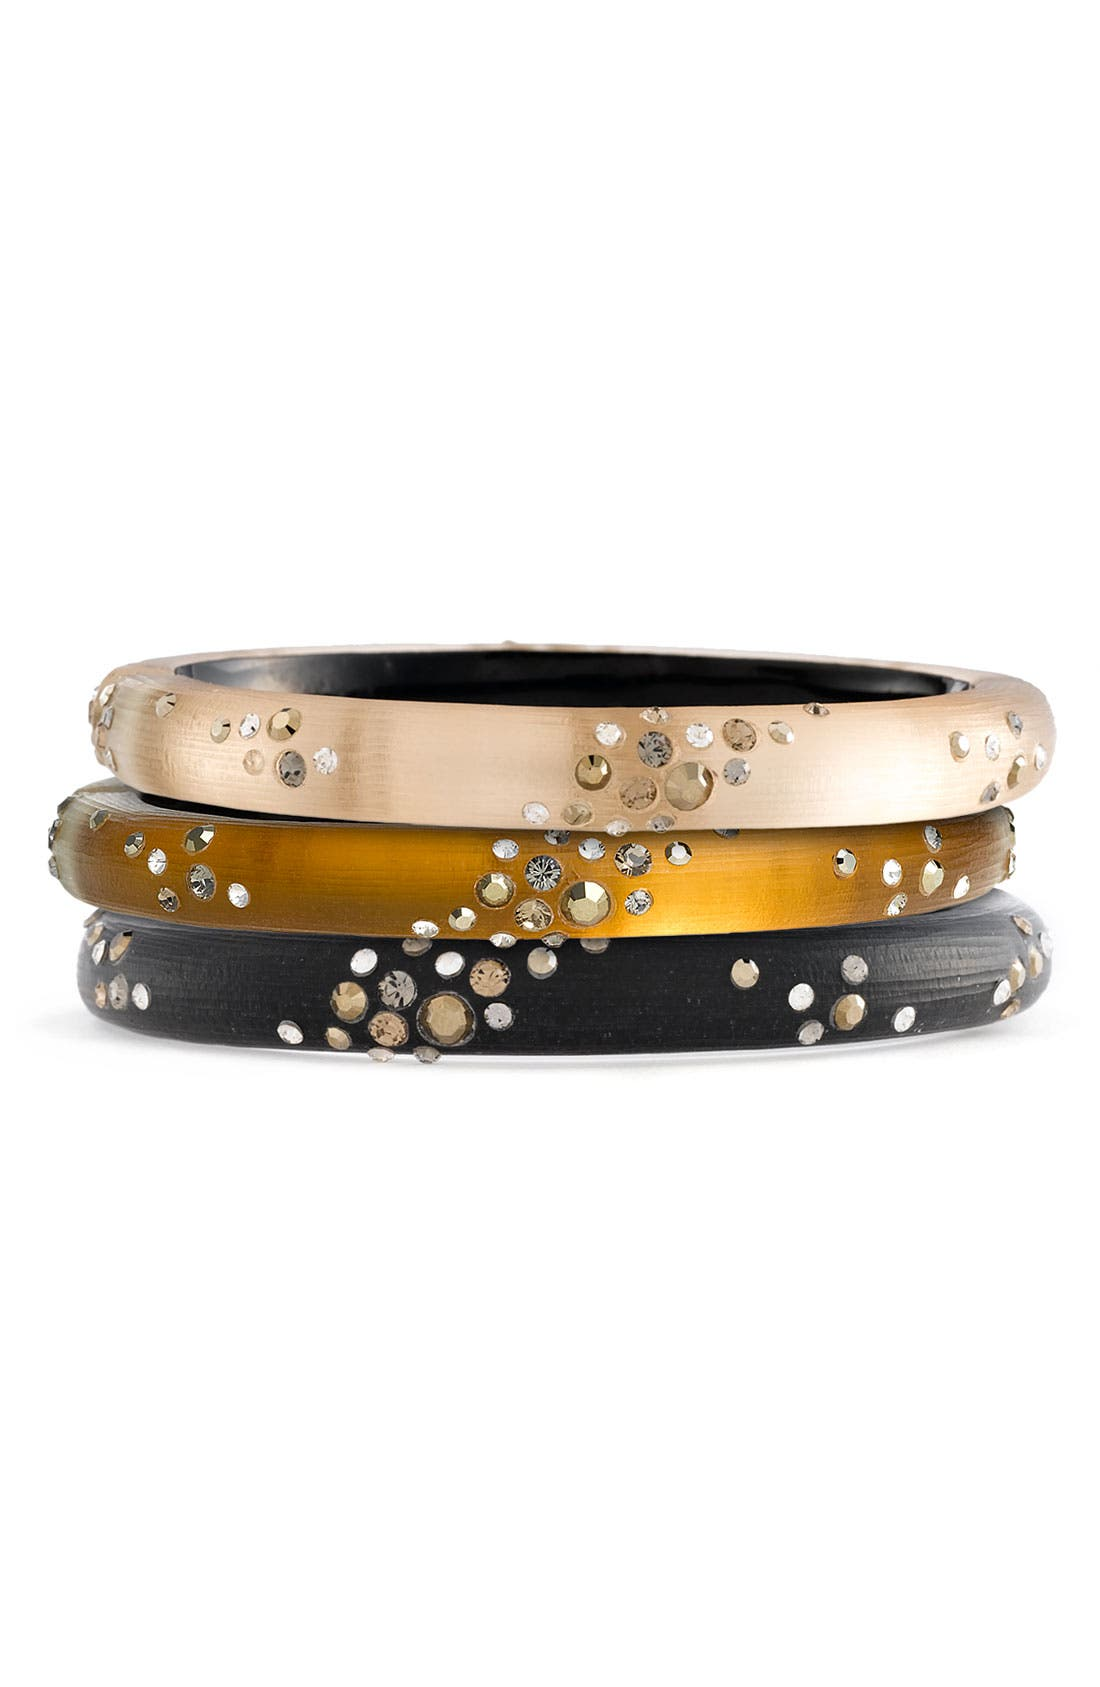 Alternate Image 1 Selected - Alexis Bittar 'Sepia Dust' Small Hinged Bracelet (Nordstrom Exclusive)